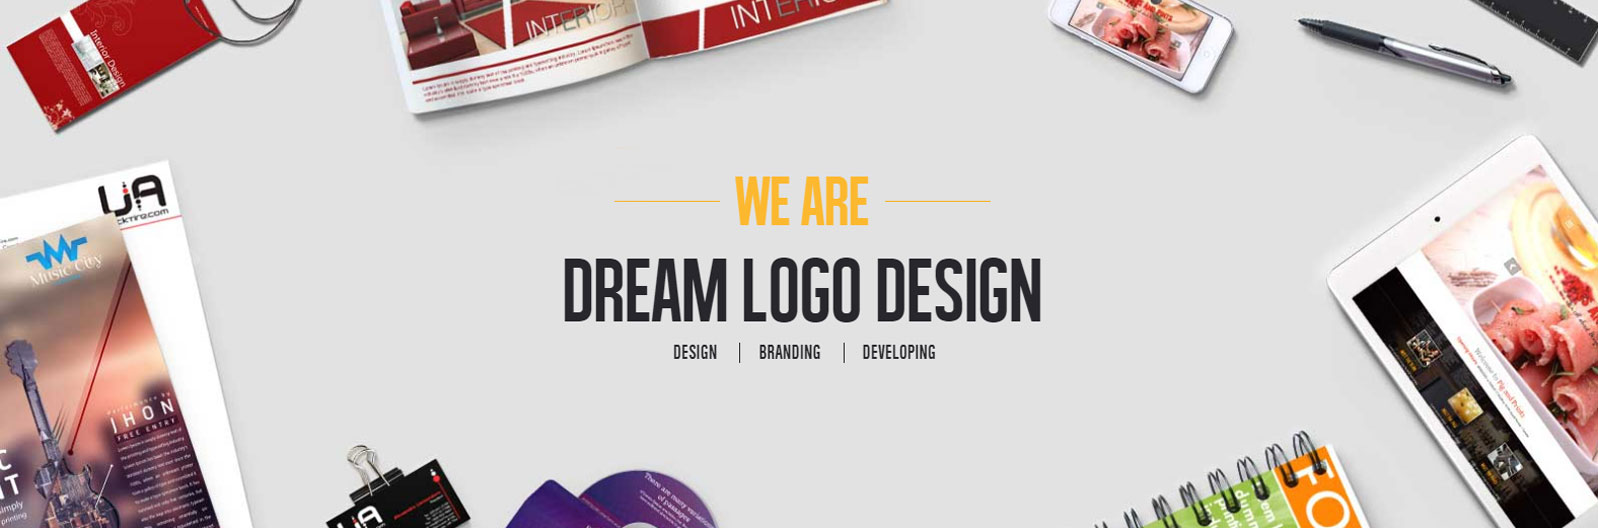 Airport Cab 3D Logo Design – DreamLogoDesign